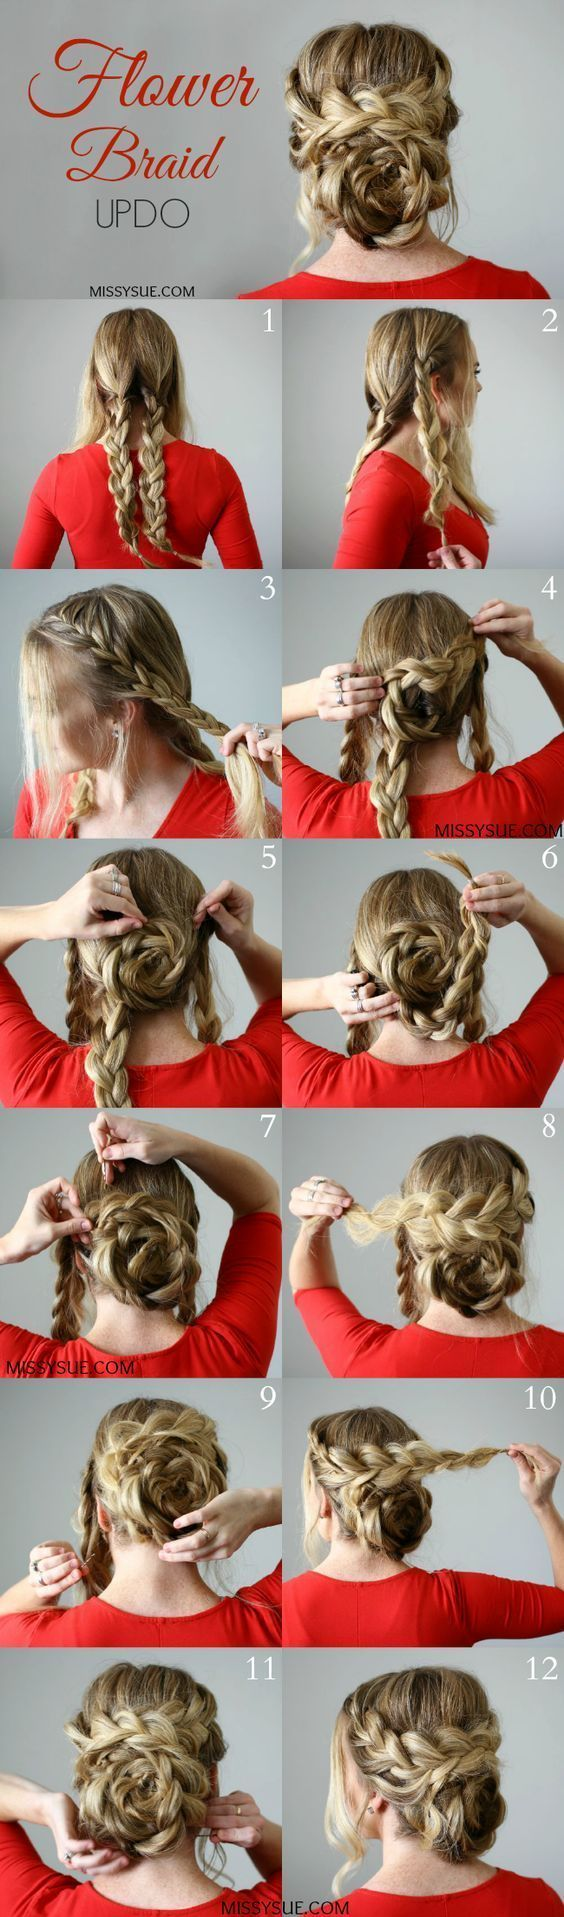 classic hairstyles flower braid